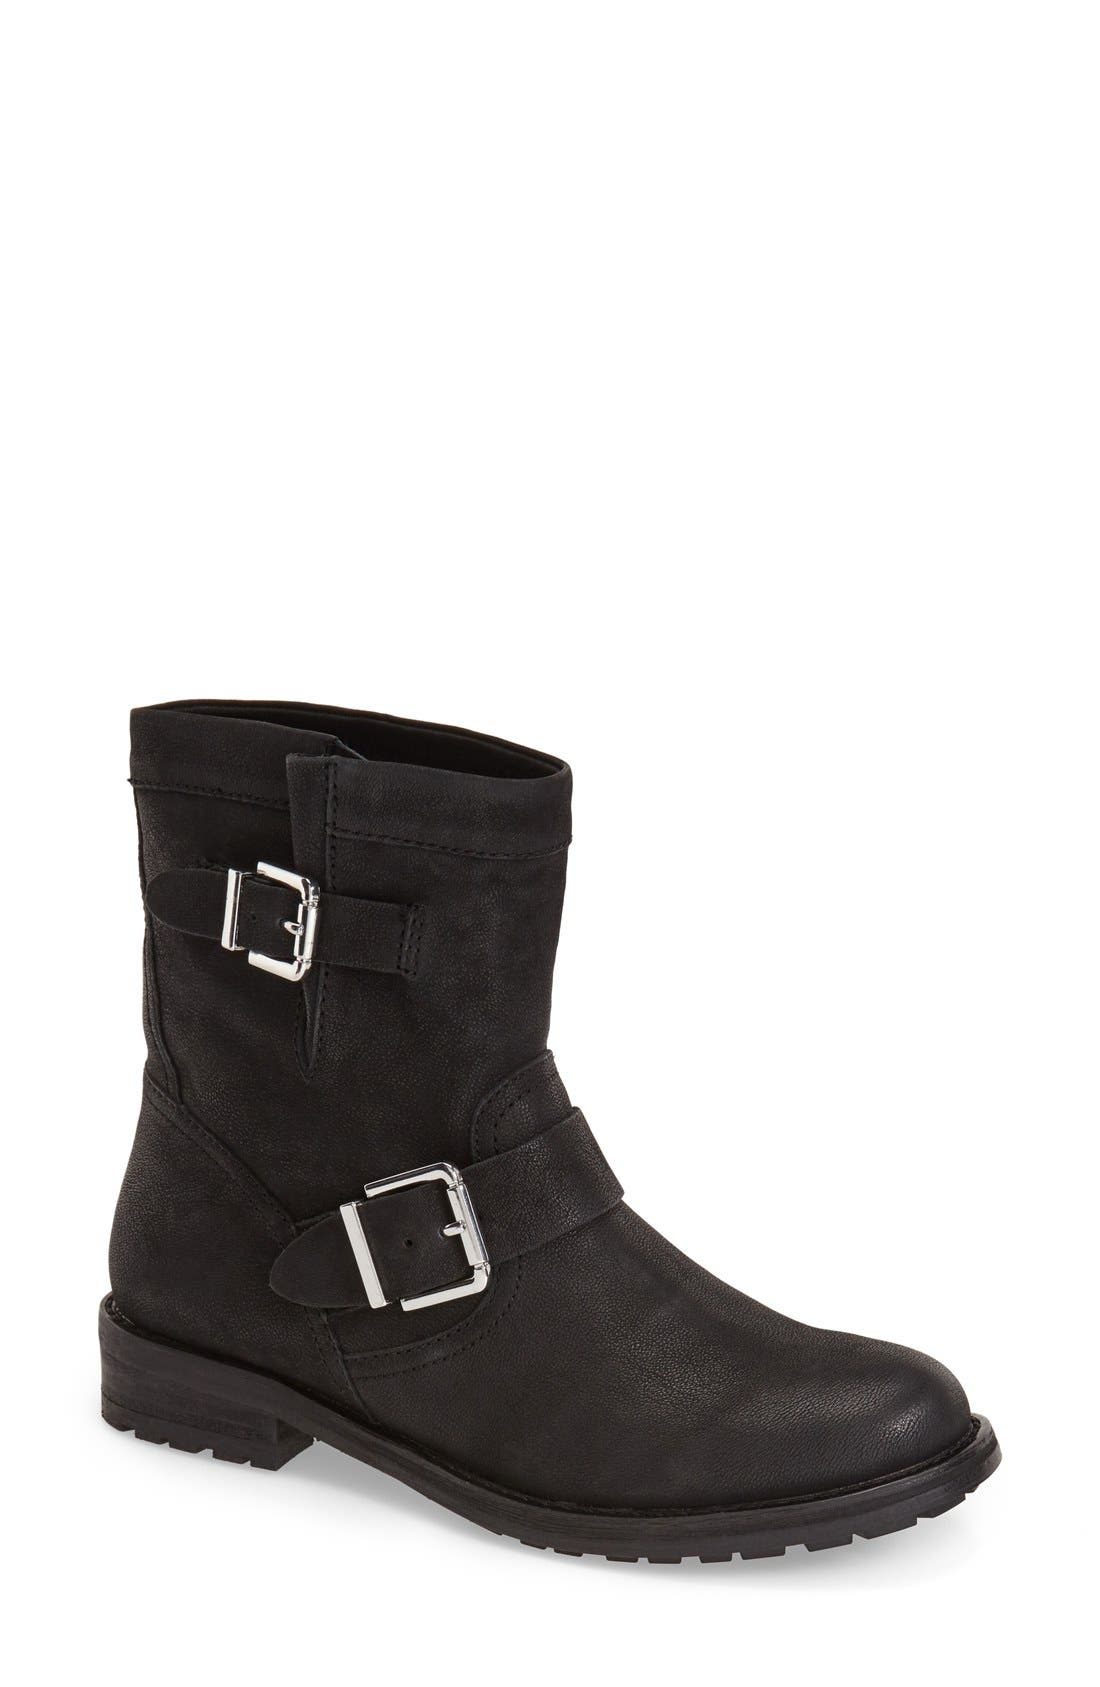 Alternate Image 1 Selected - Vince Camuto 'Rubina' Bootie (Women)